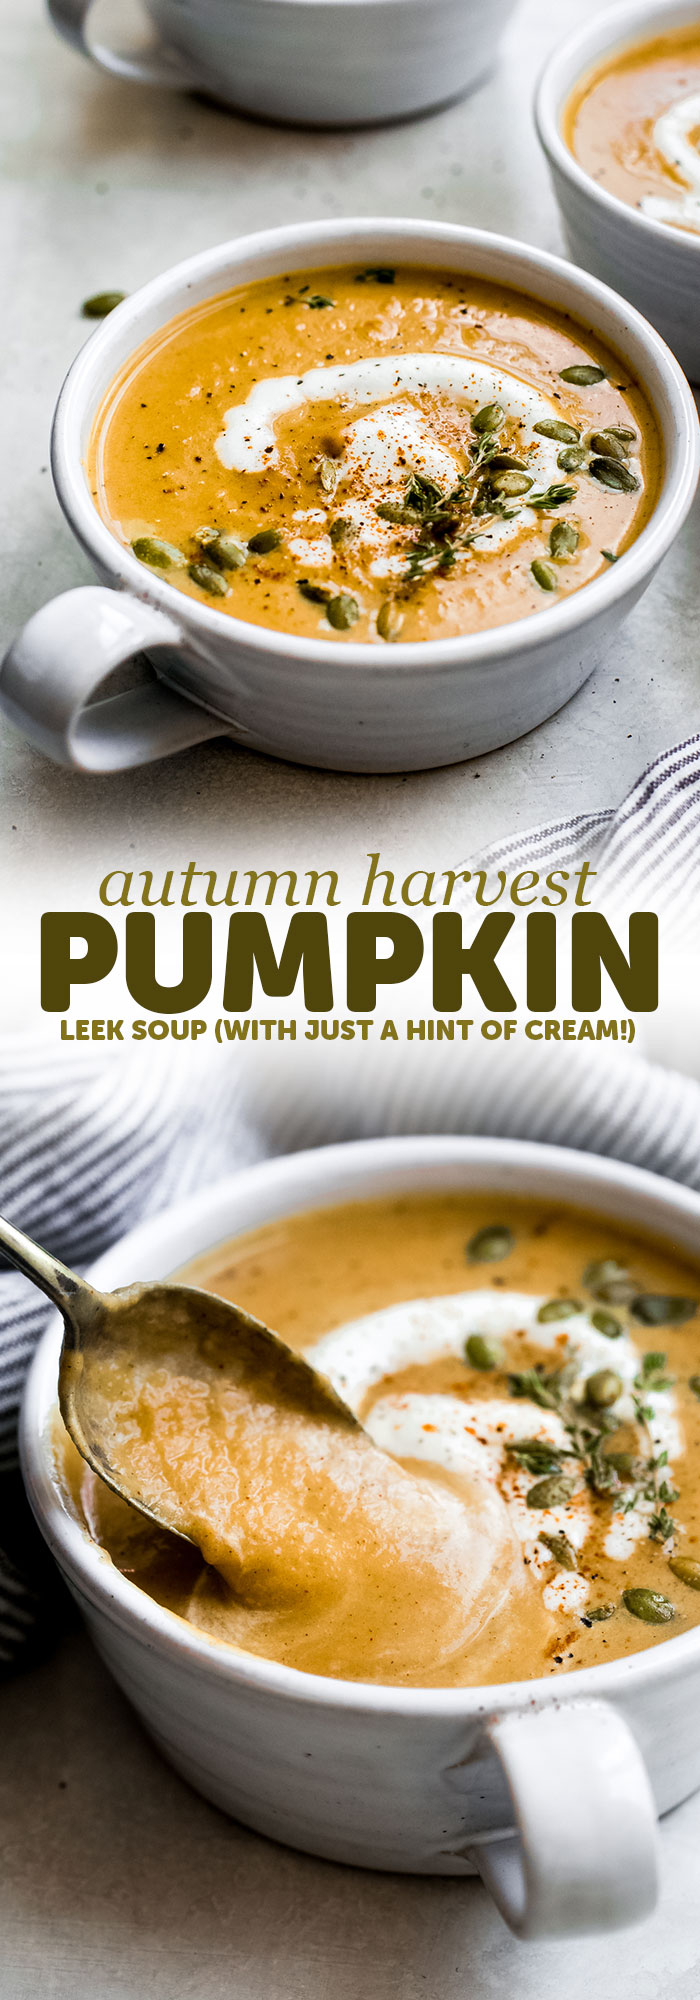 Harvest Pumpkin Leek Soup is a quick and easy soup I love throwing together! It's loaded with warm, autumn flavors and is silky smooth. The hint of cream really takes this over the top! Perfect for fall lunches or as an appetizer for Thanksgiving! #pumpkinsoup #butternutsquashsoup #soup #easysoup #souprecipe | Littlespicejar.com